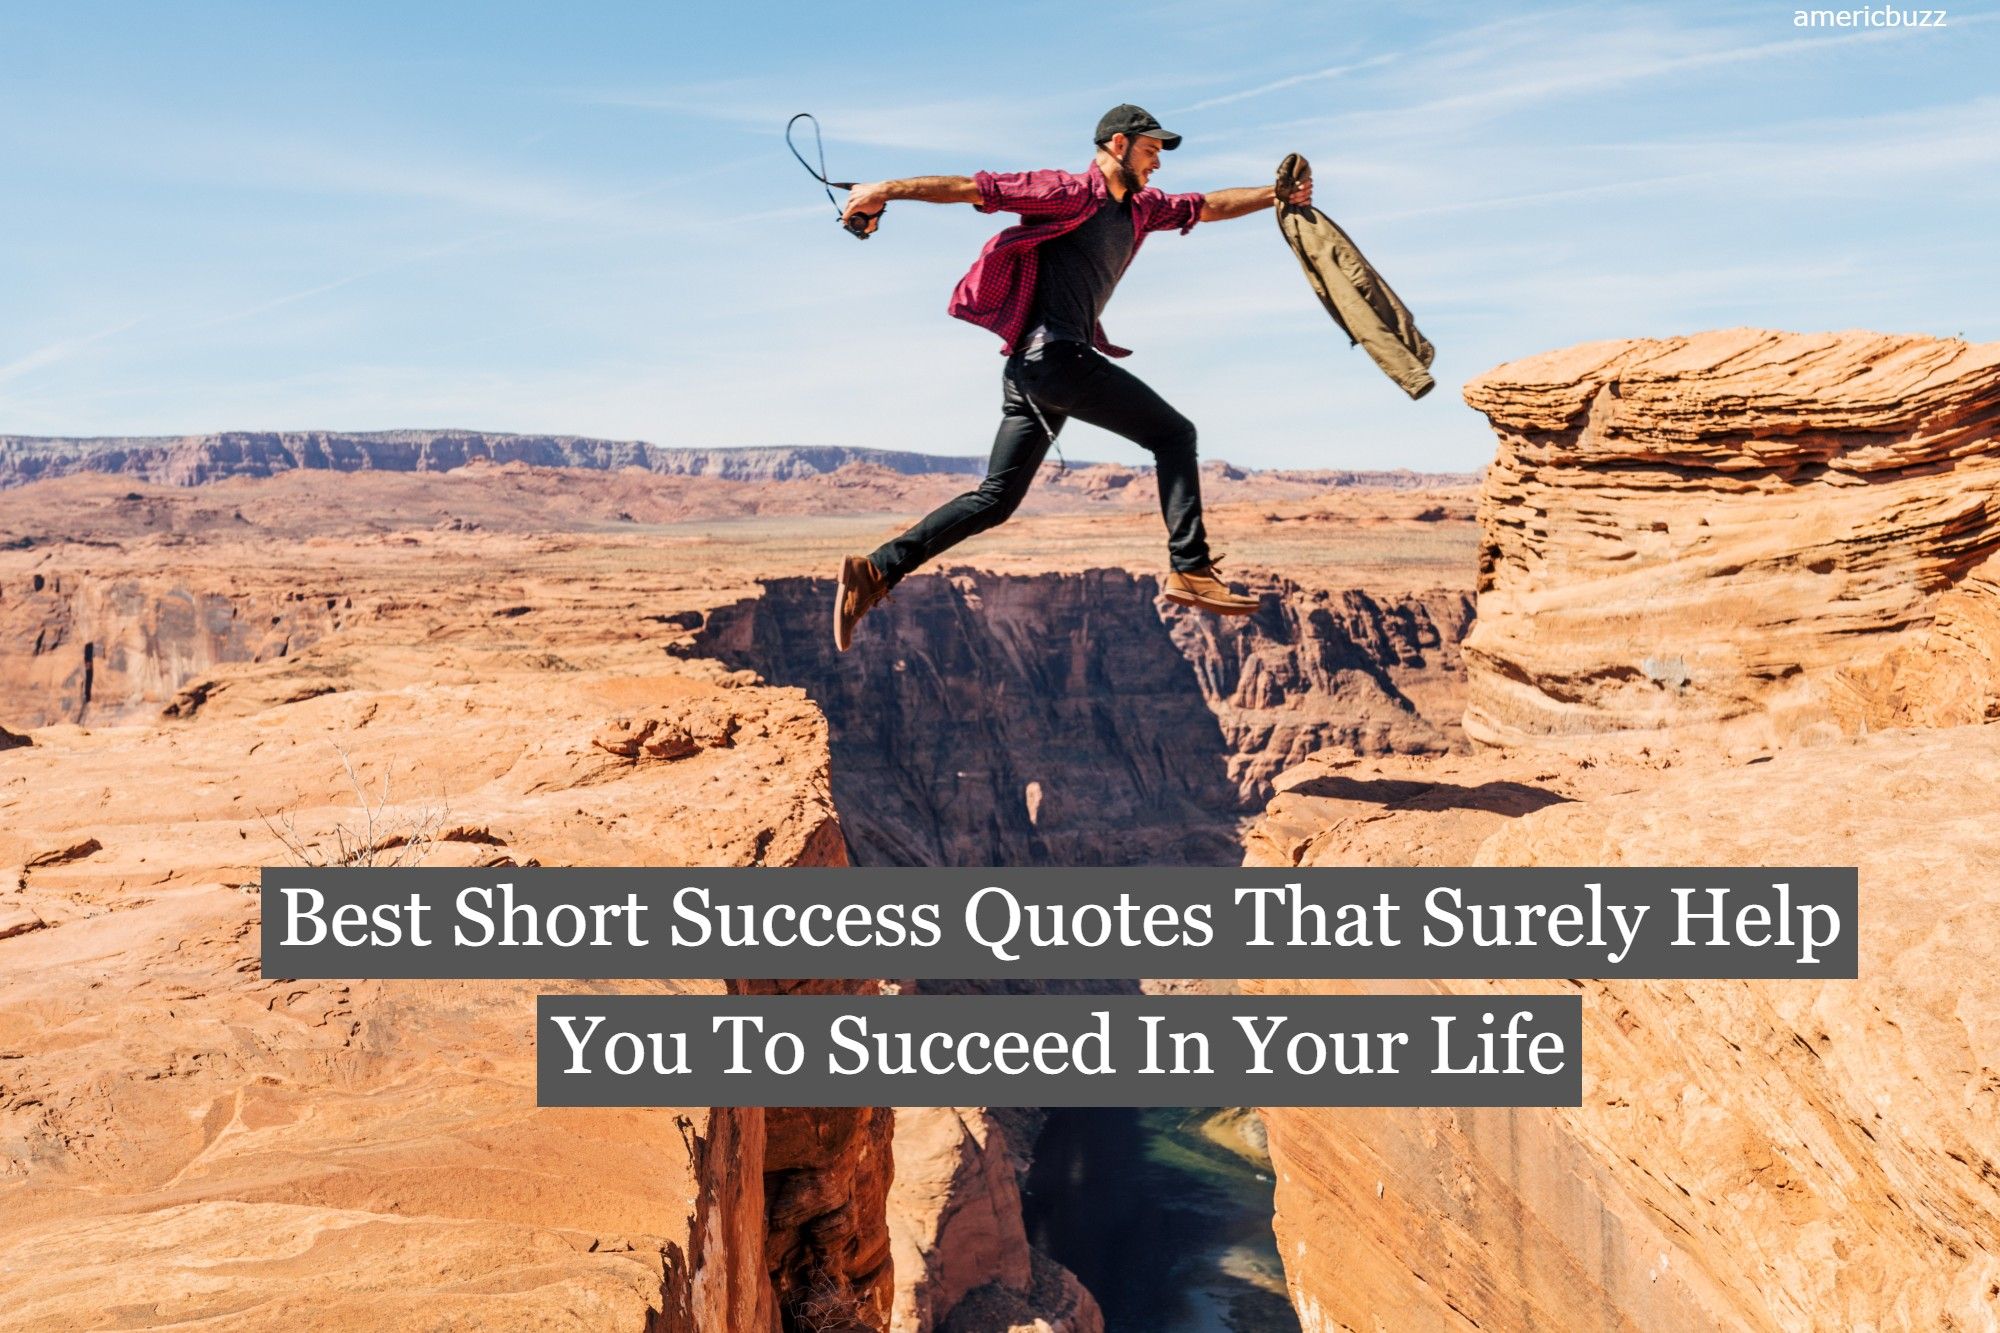 Best Short Success Quotes That Surely Help You To Succeed In Your Life